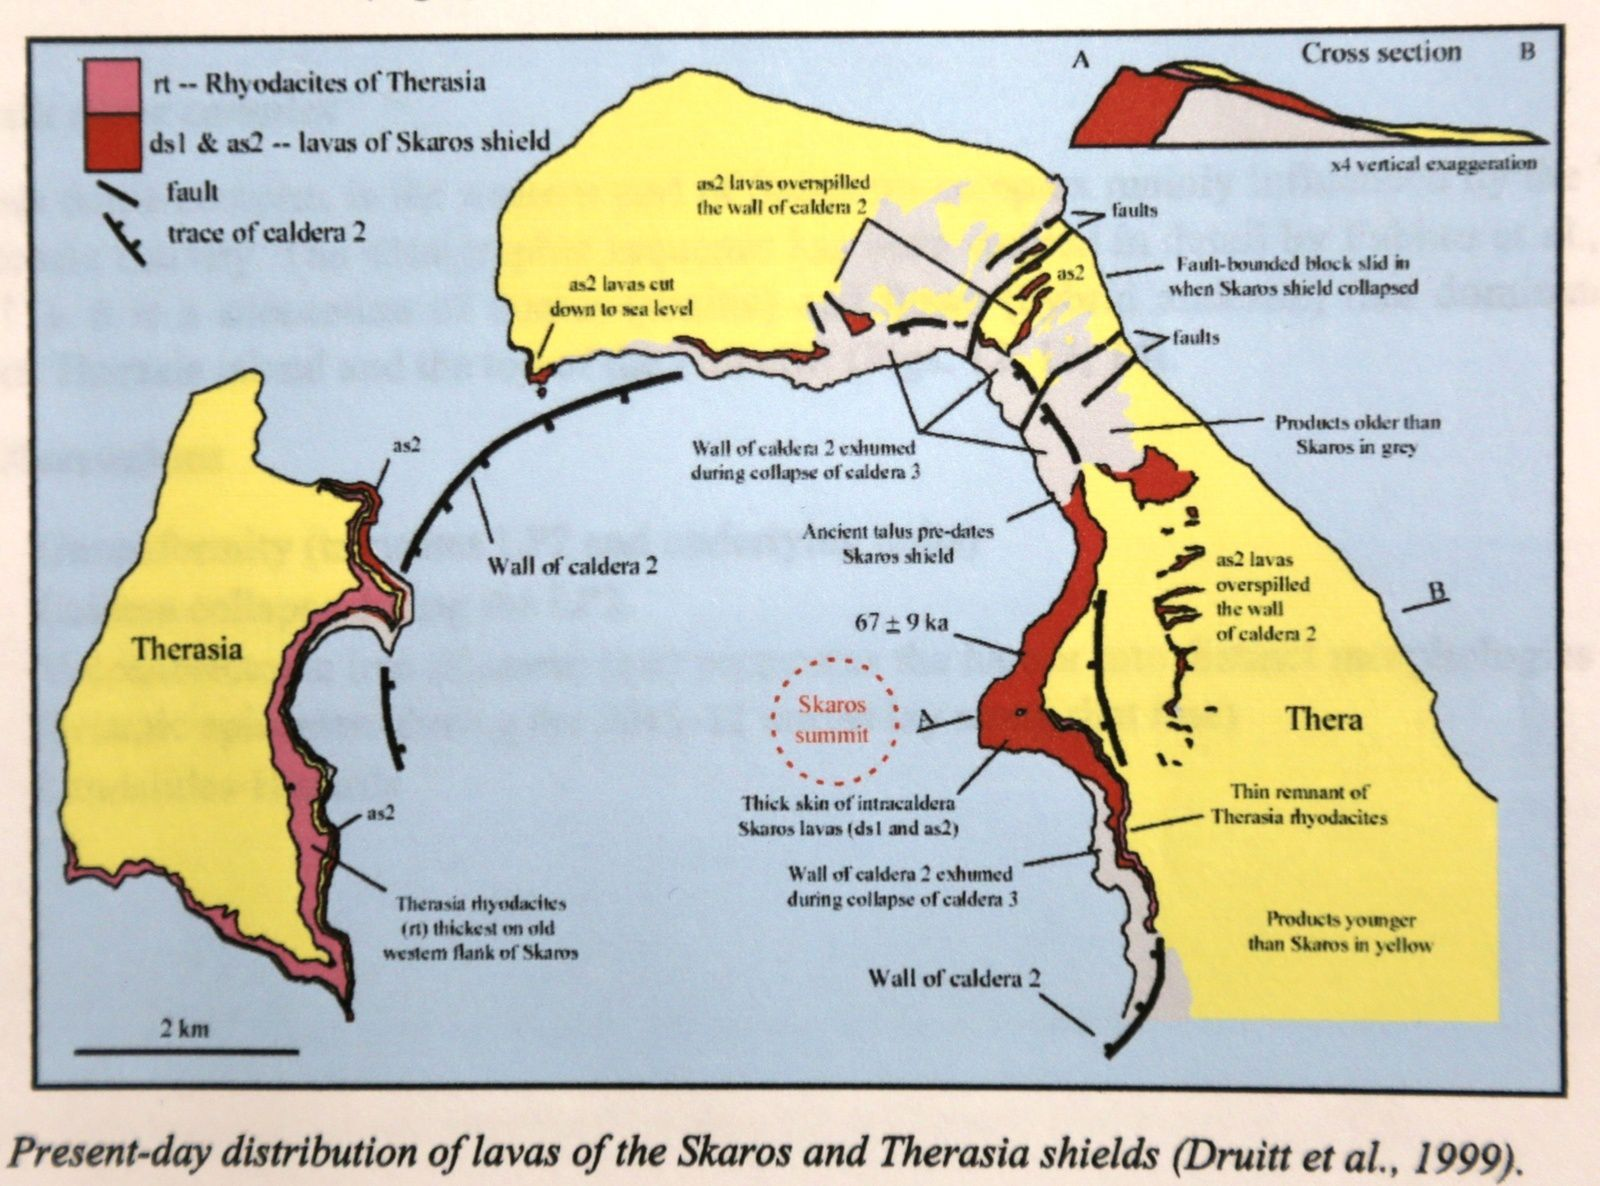 Santorini - current distribution of Skaros lavas and Therasia dome complex - Doc. Druitt & al. 1999